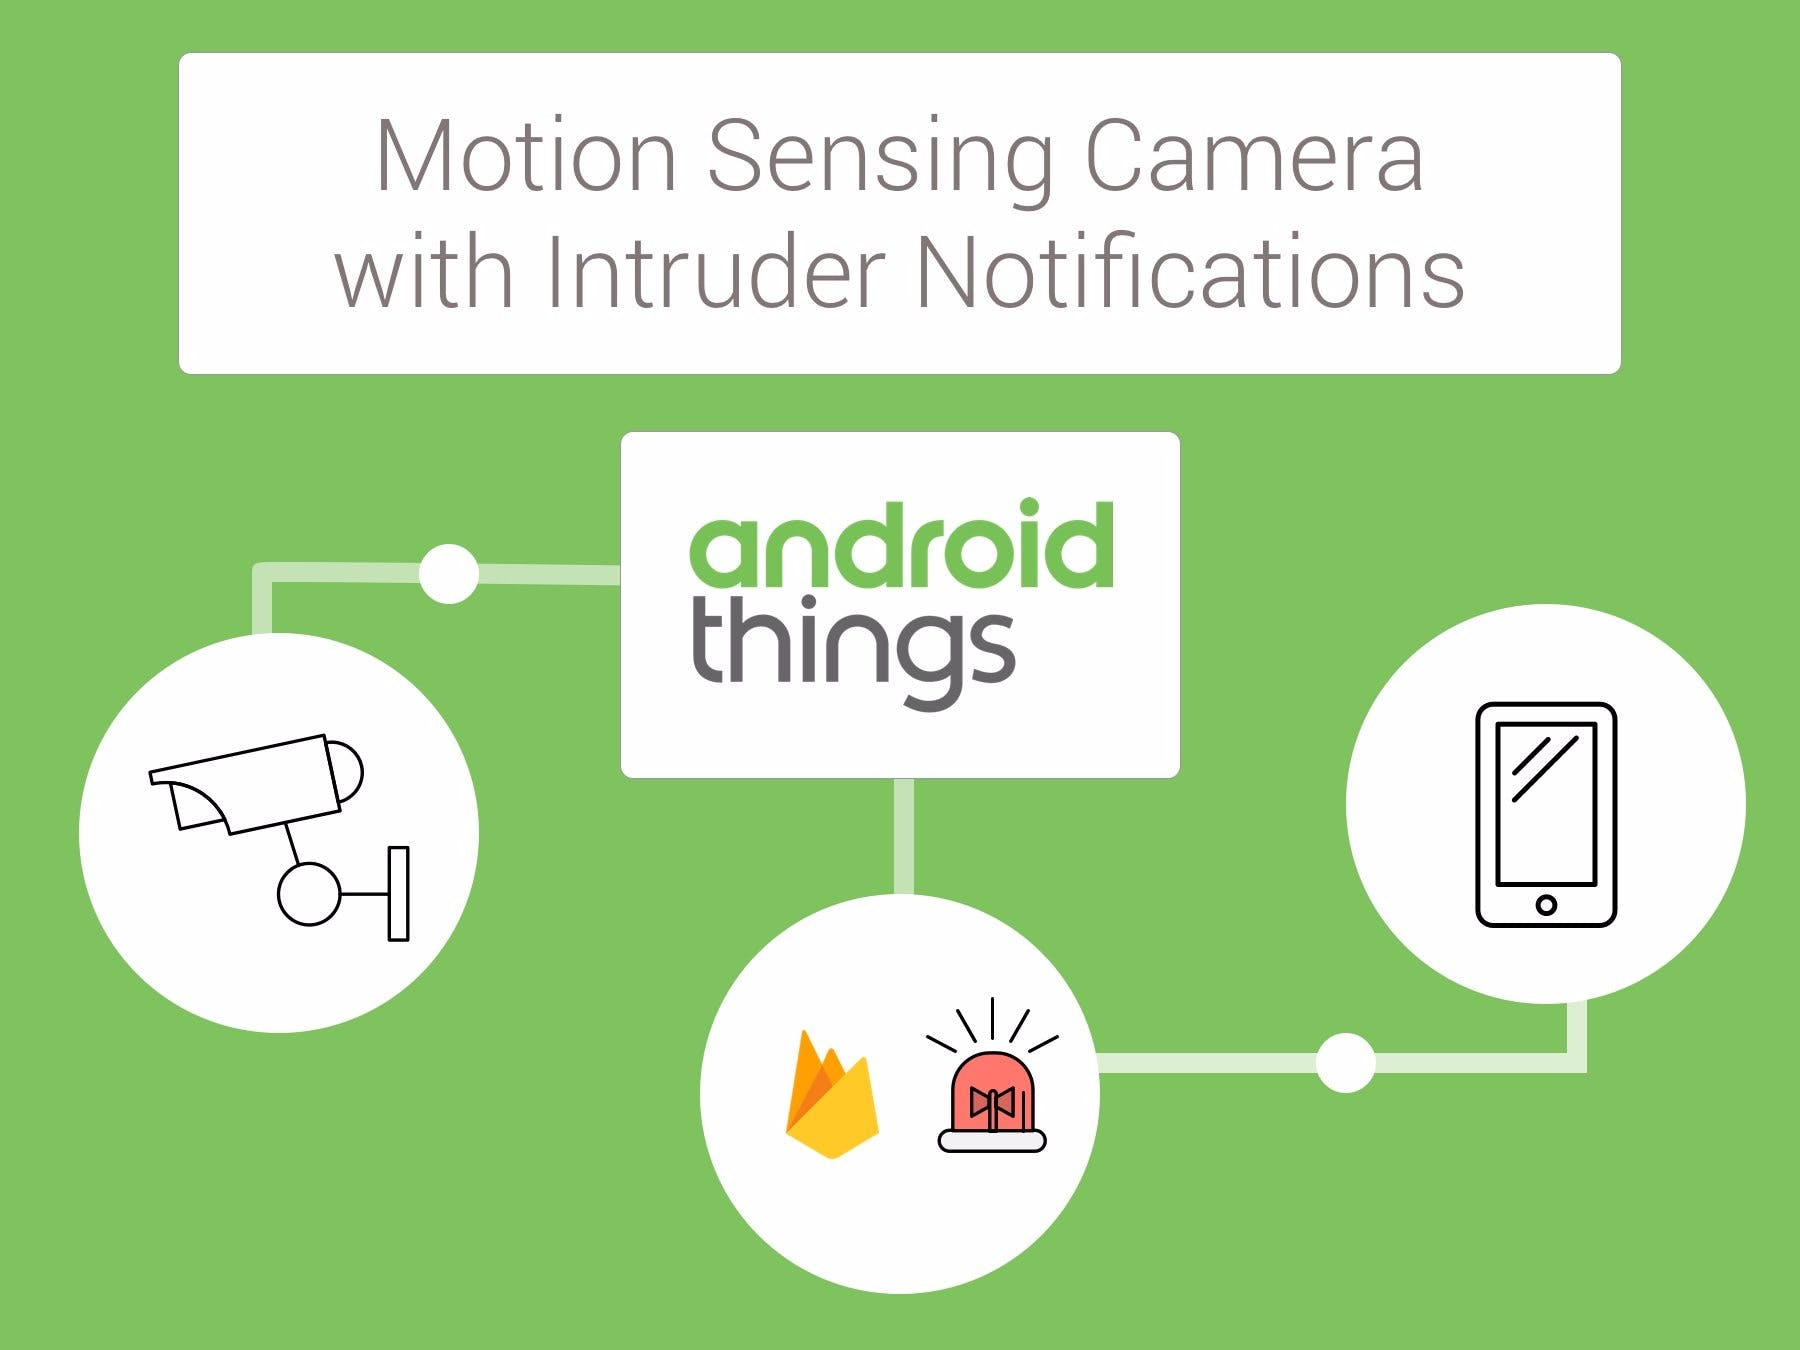 Smart Motion Sensing Camera with Intruder Notifications